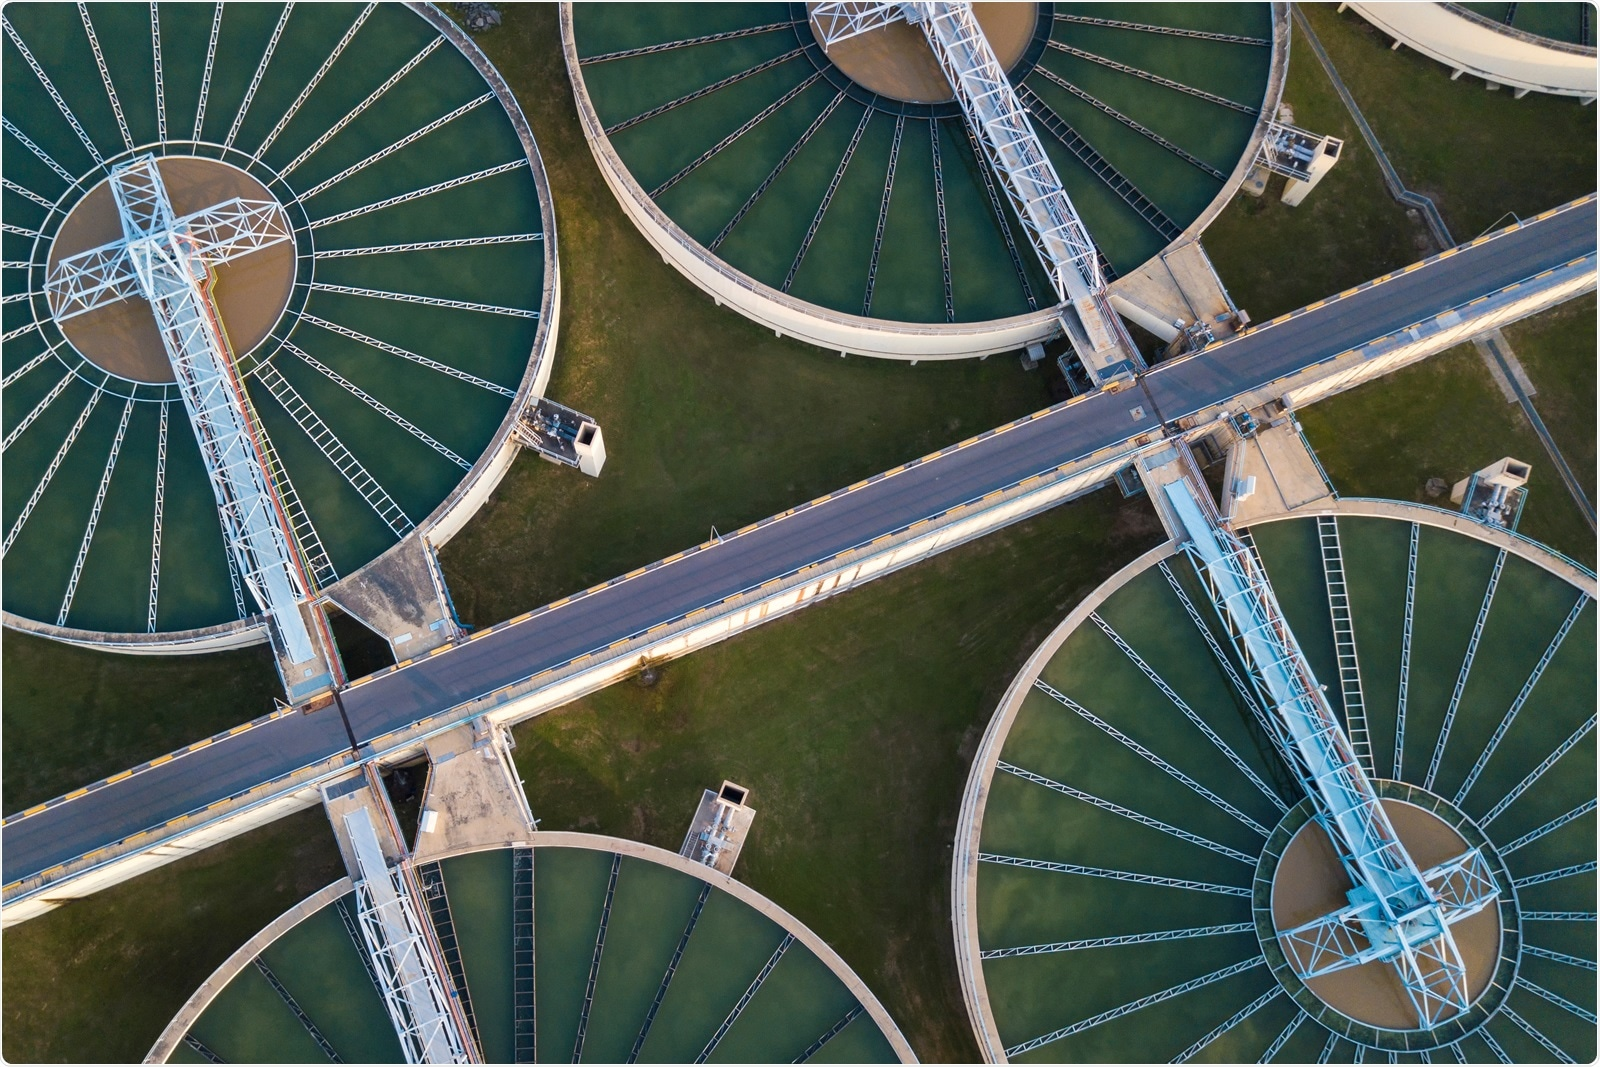 Study: SARS-CoV-2 Protein in Wastewater Mirrors COVID-19 Prevalence. Image Credit: People Image Studio / Shutterstock